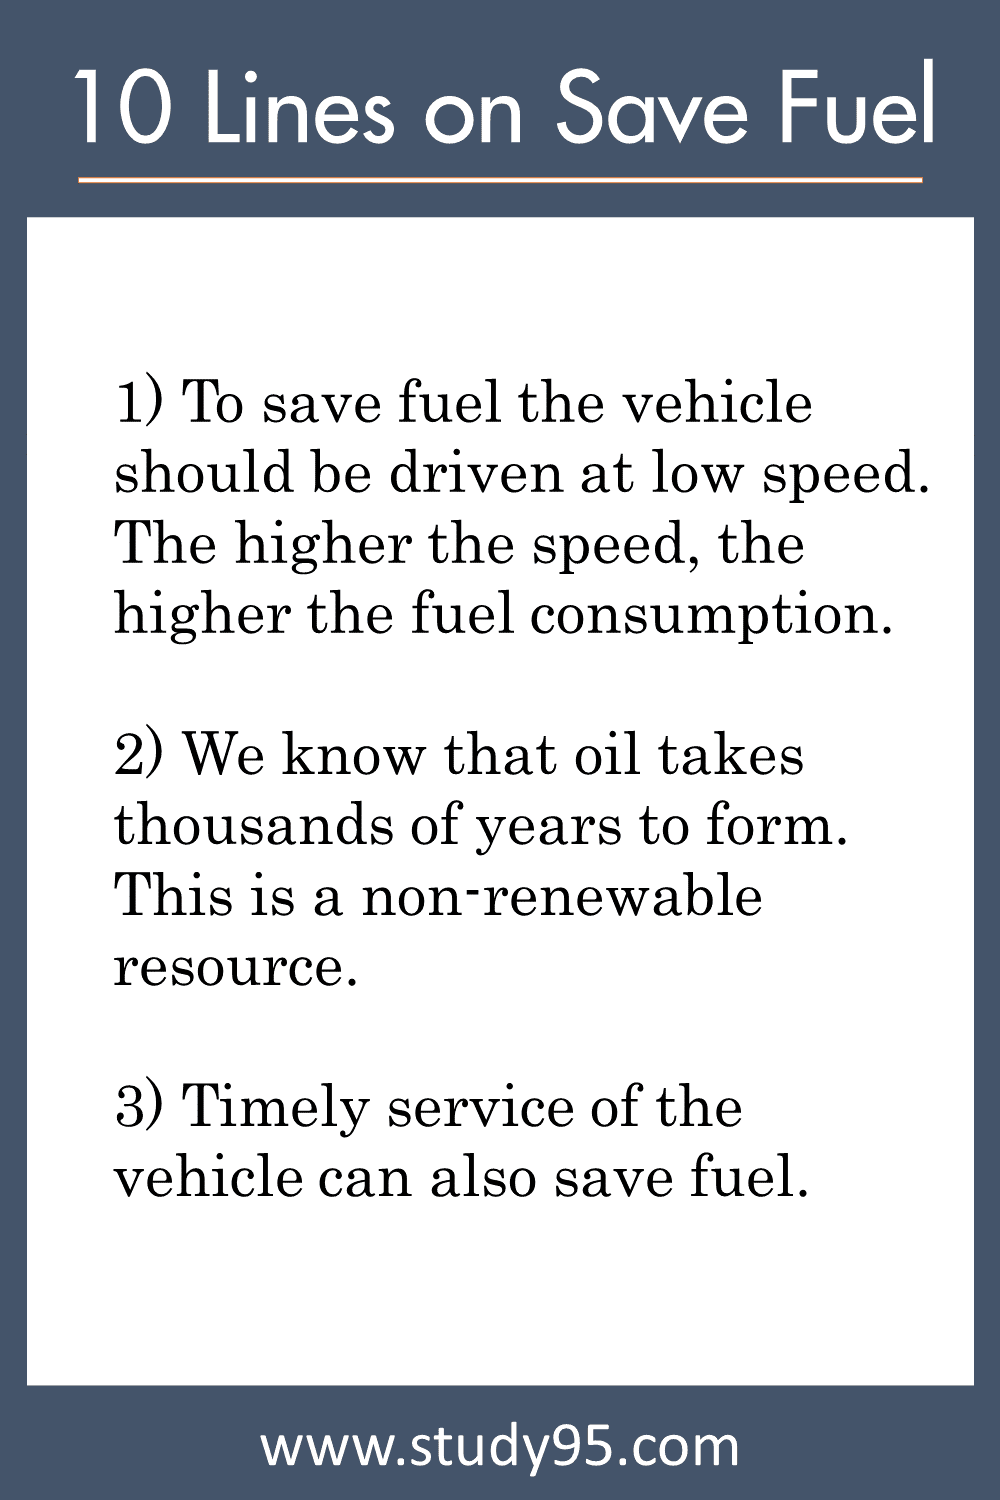 10 Easy Ways to Save Fuel